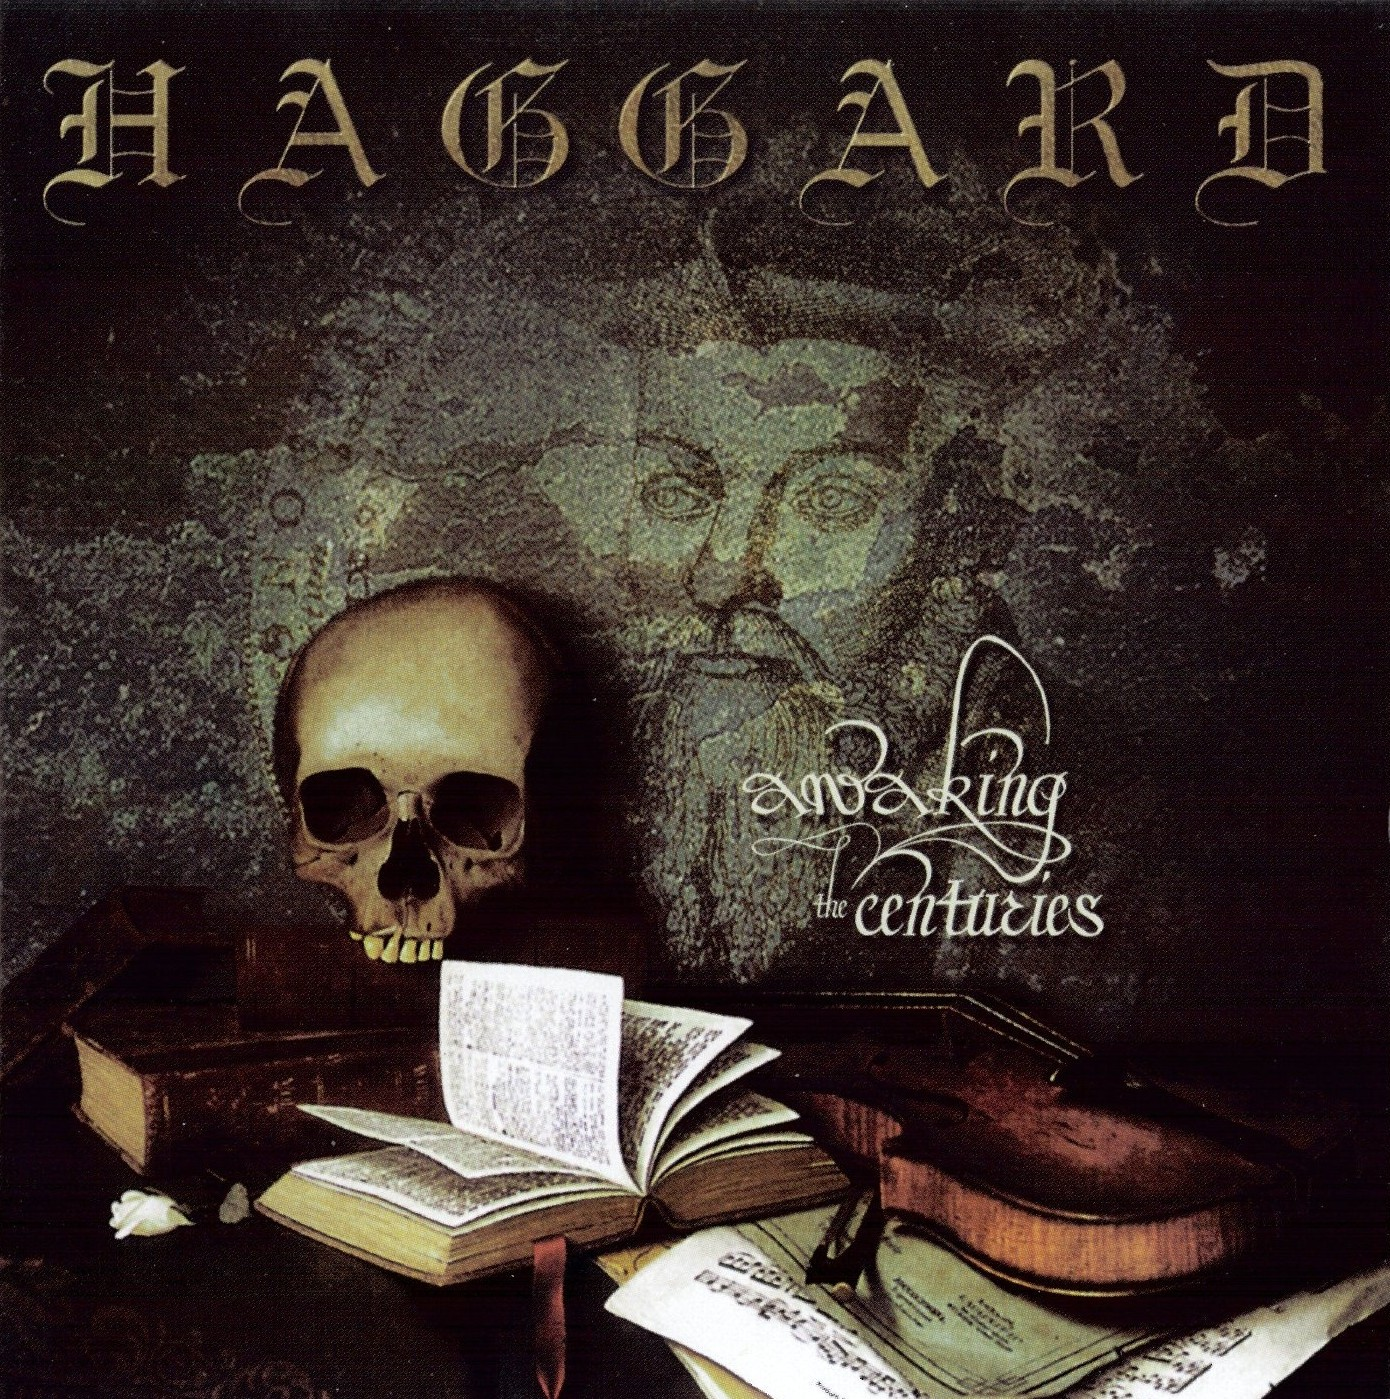 Haggard - Awaking The Centuries - Front